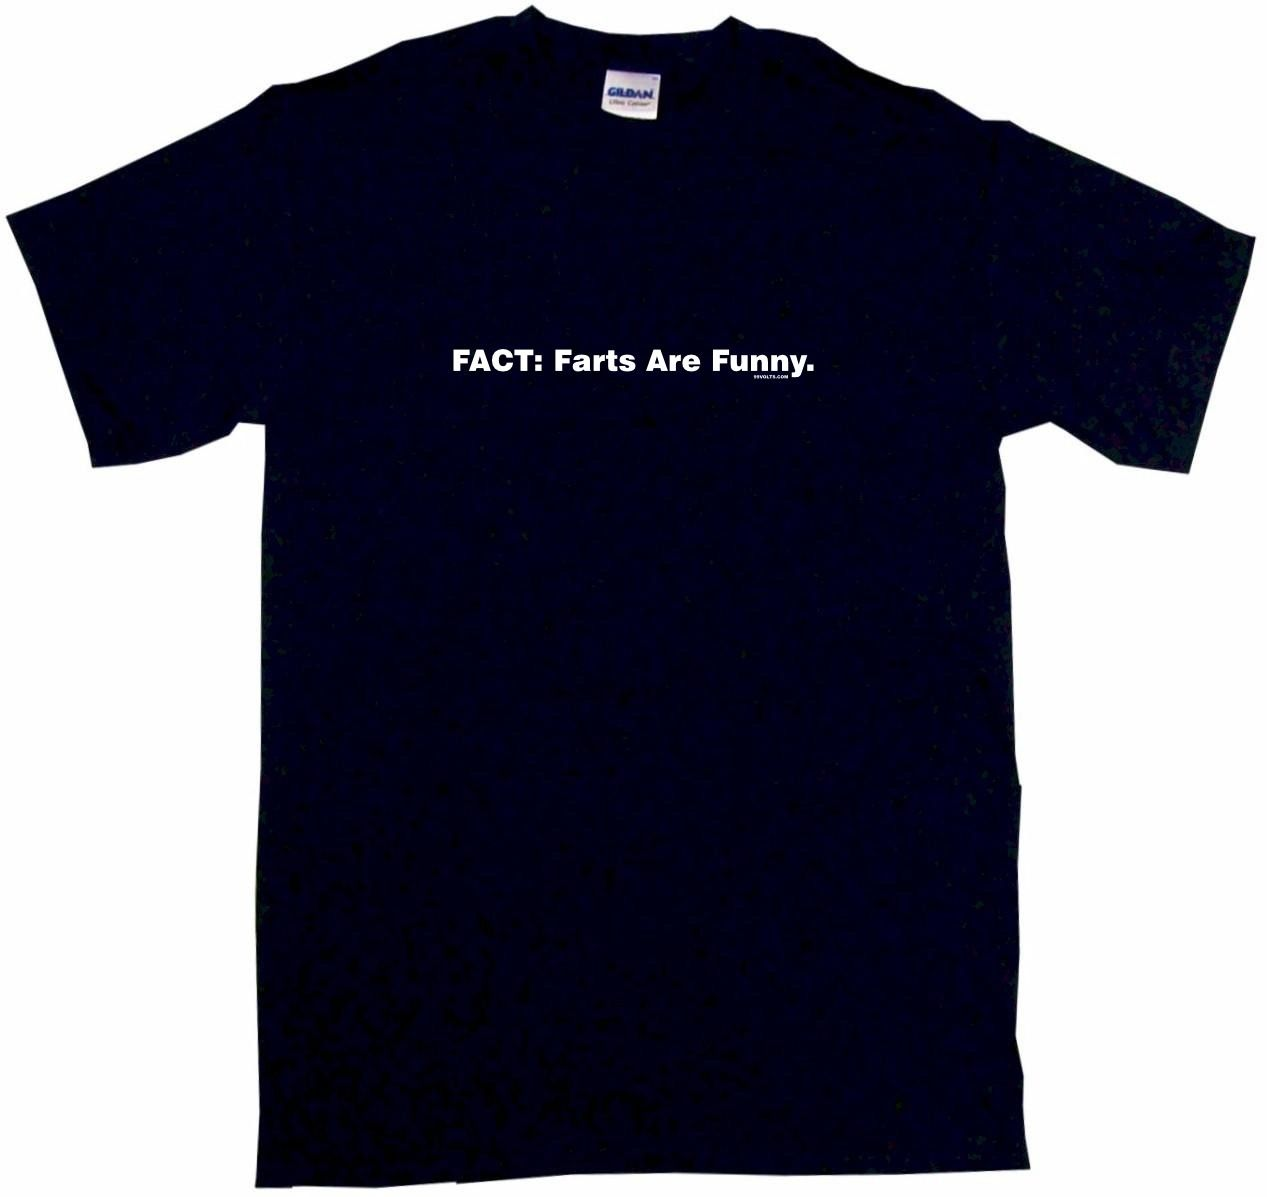 Fact Farts Are Funny Mens Tee Shirt Pick Size Color Small Print T Shirts Man Short Sleev ...